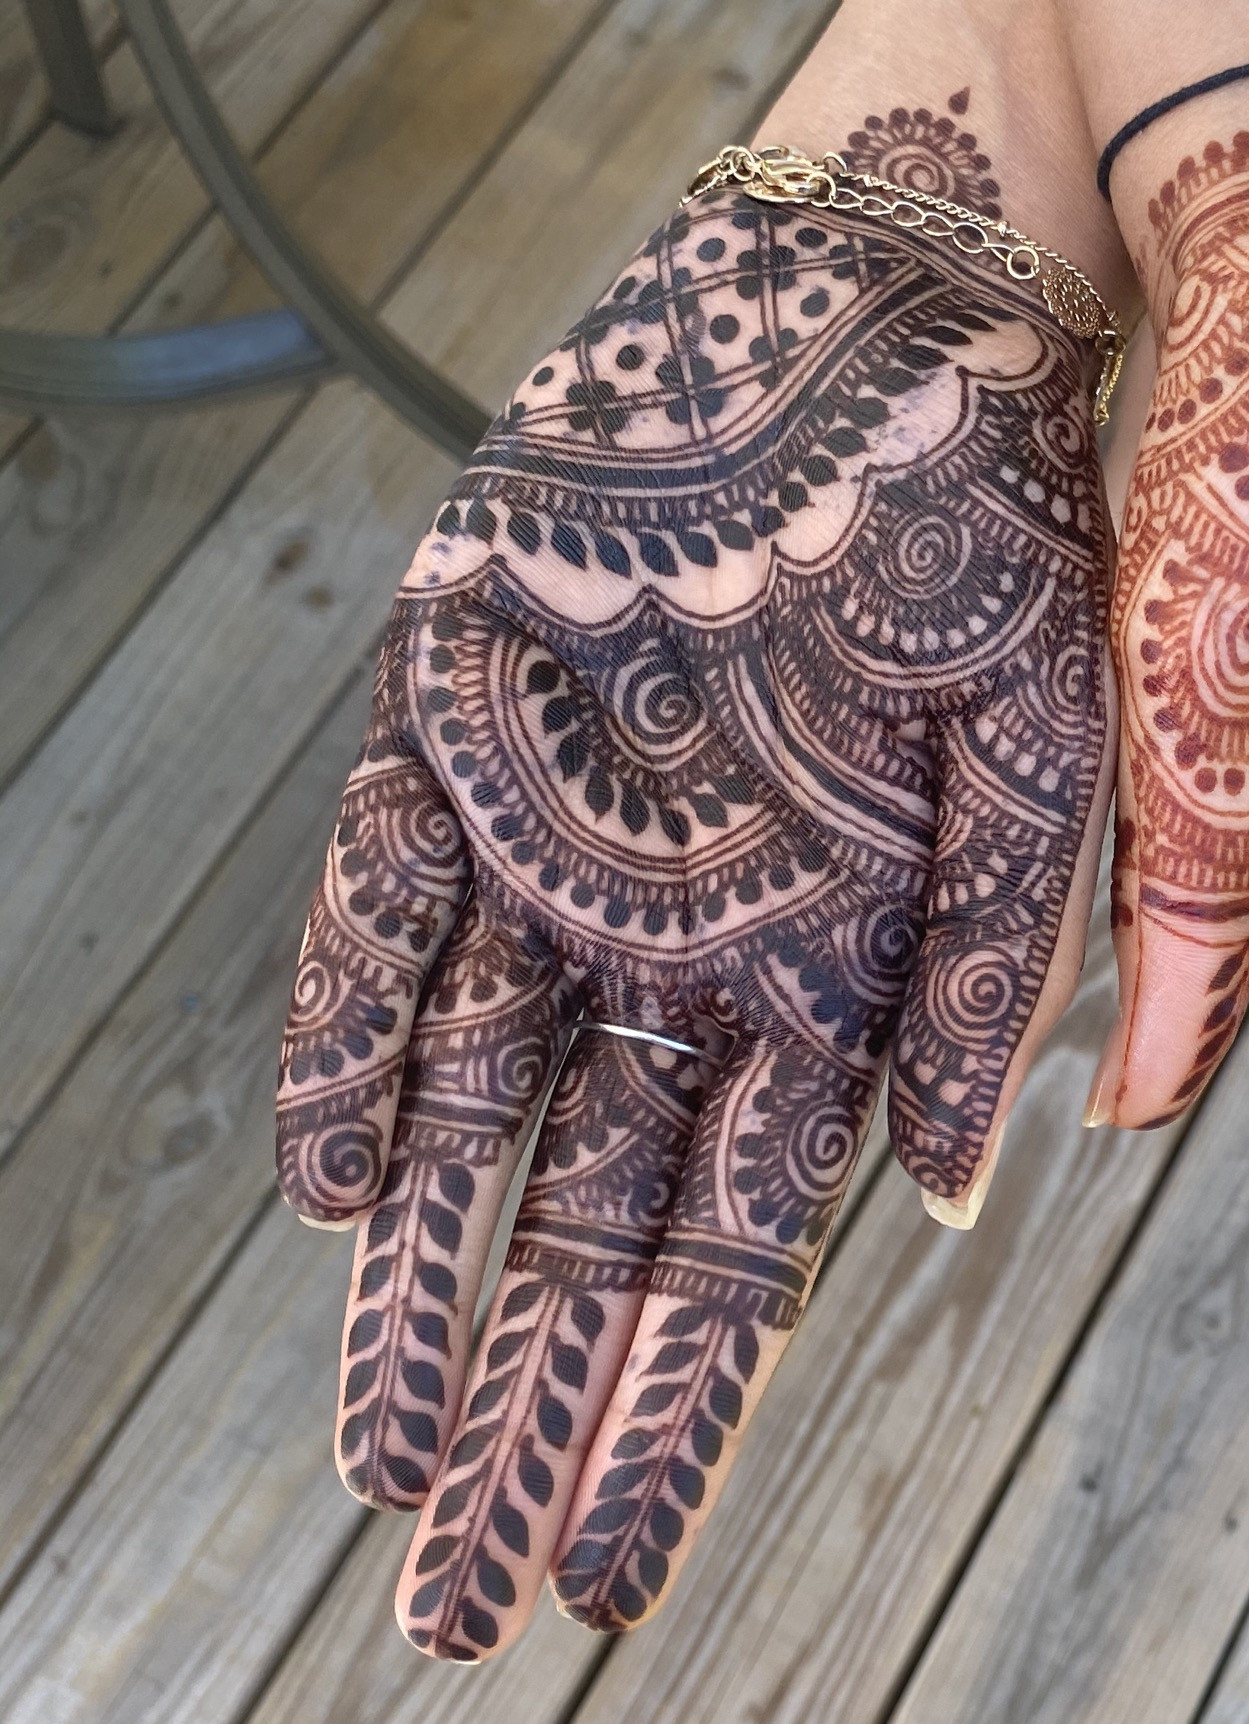 30 Minute Jagua Henna Appointment